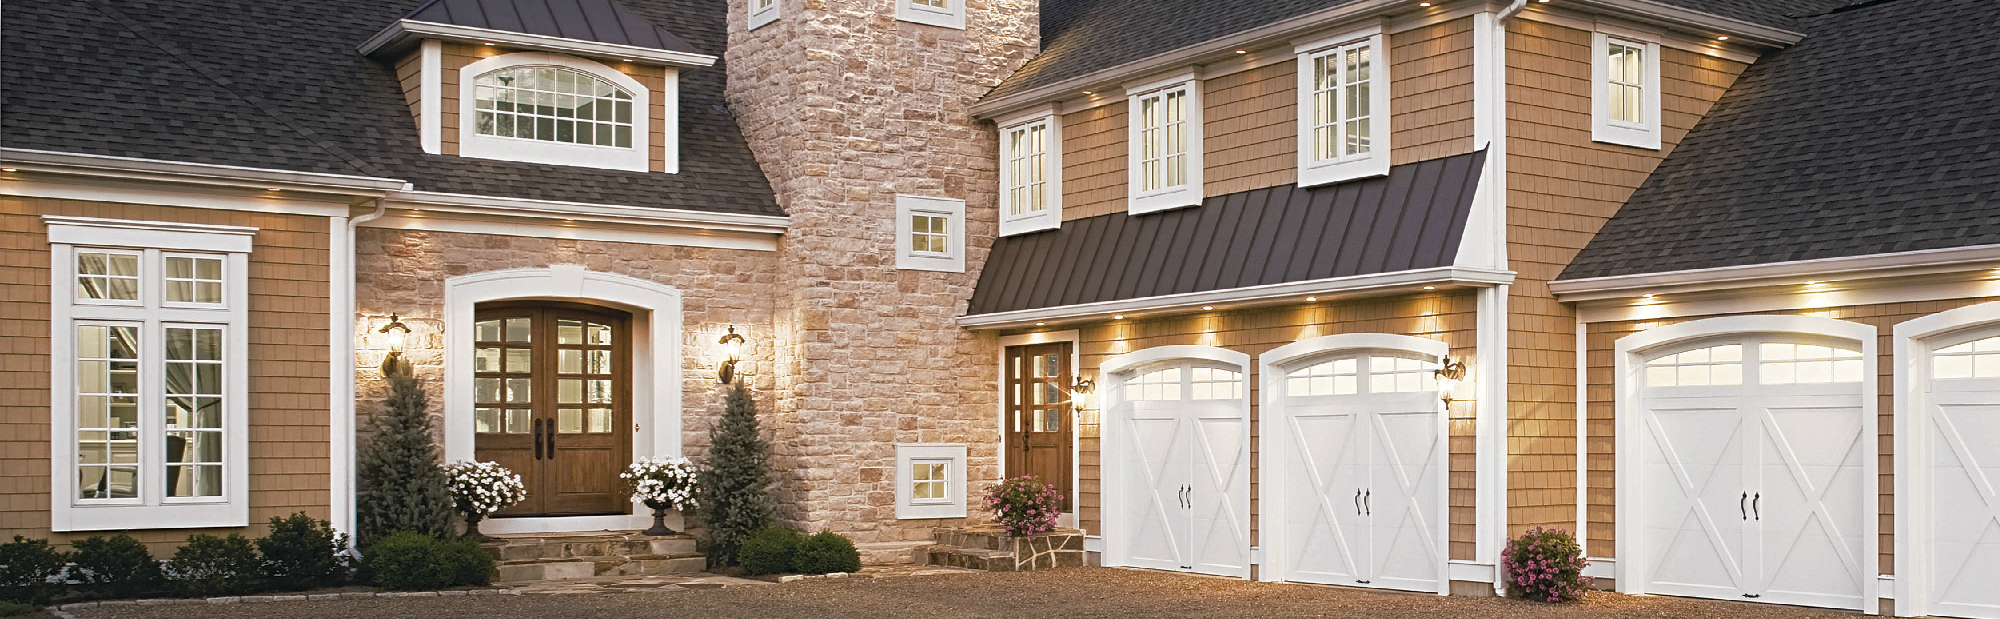 Garage And Front Doors That Match Residential Commercial Garage Doors Marvin S Garage Doors